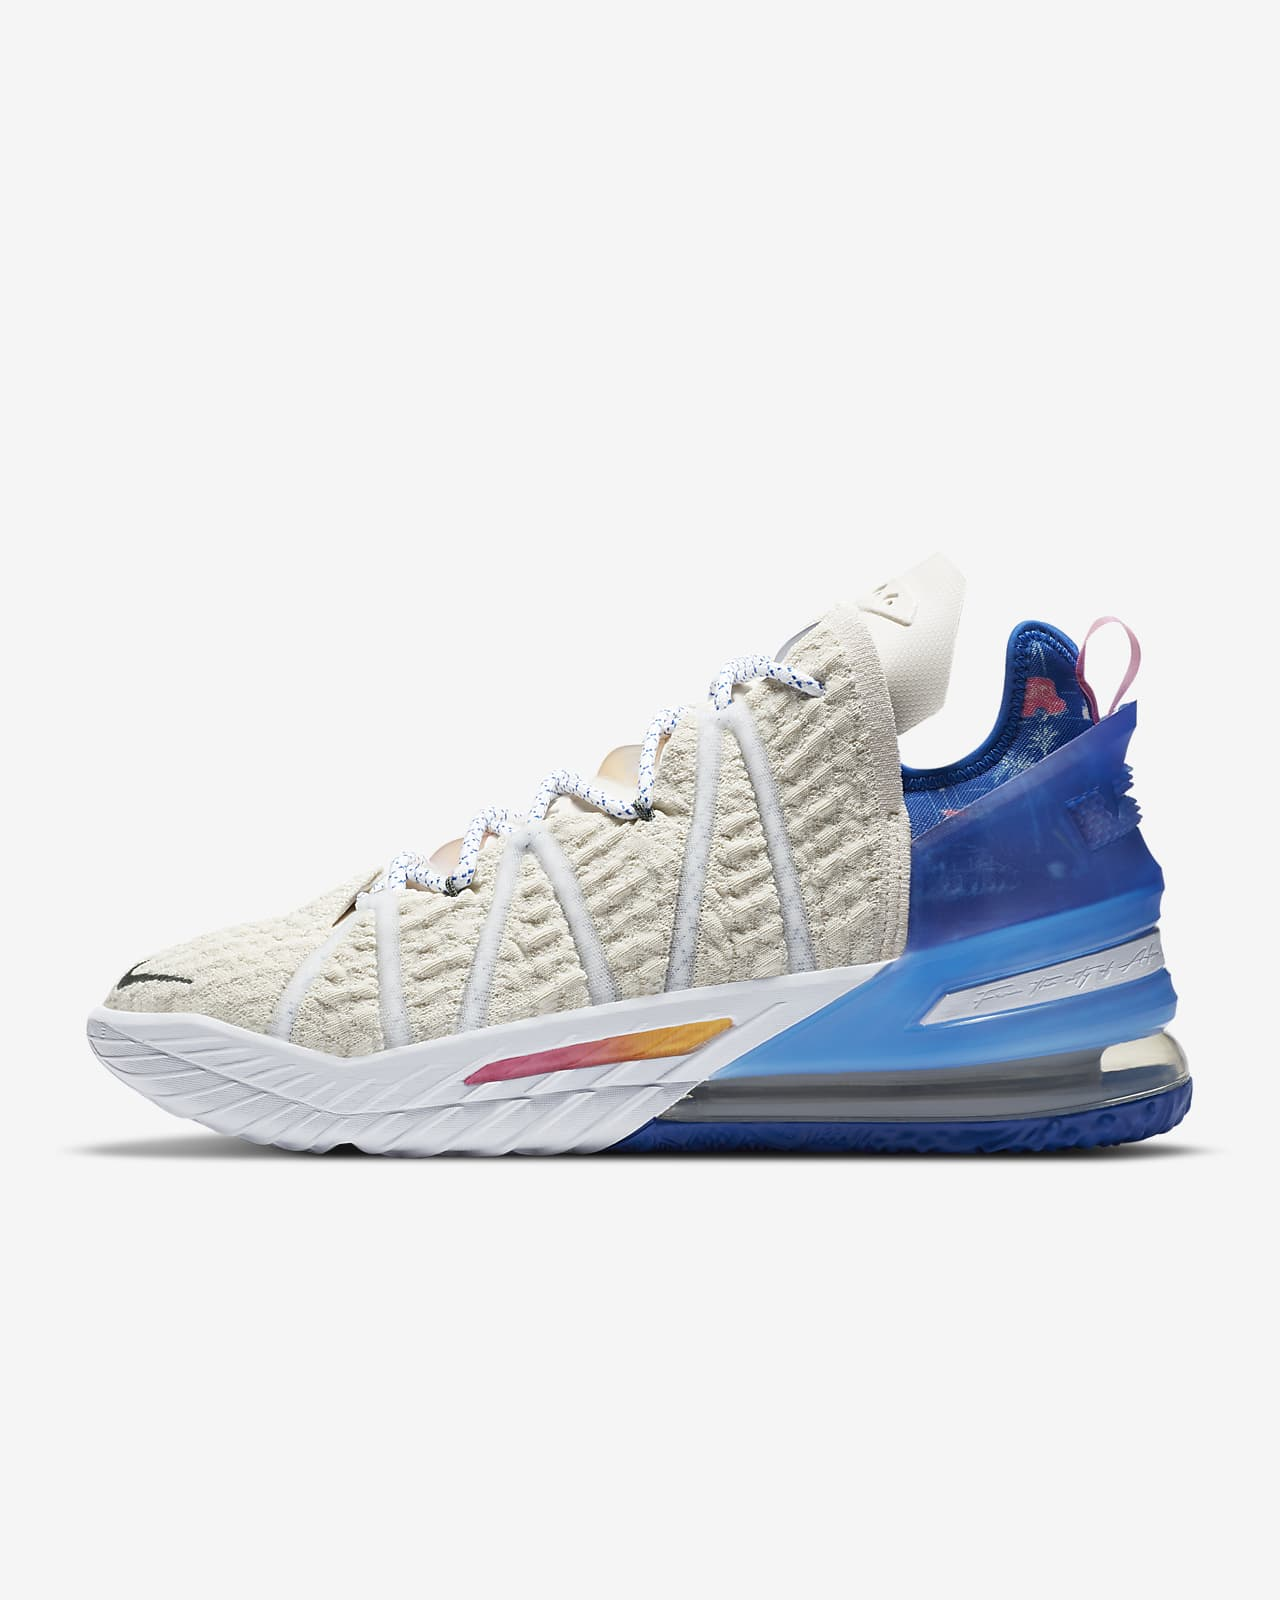 LeBron 18 'Los Angeles By Day' Basketball Shoe